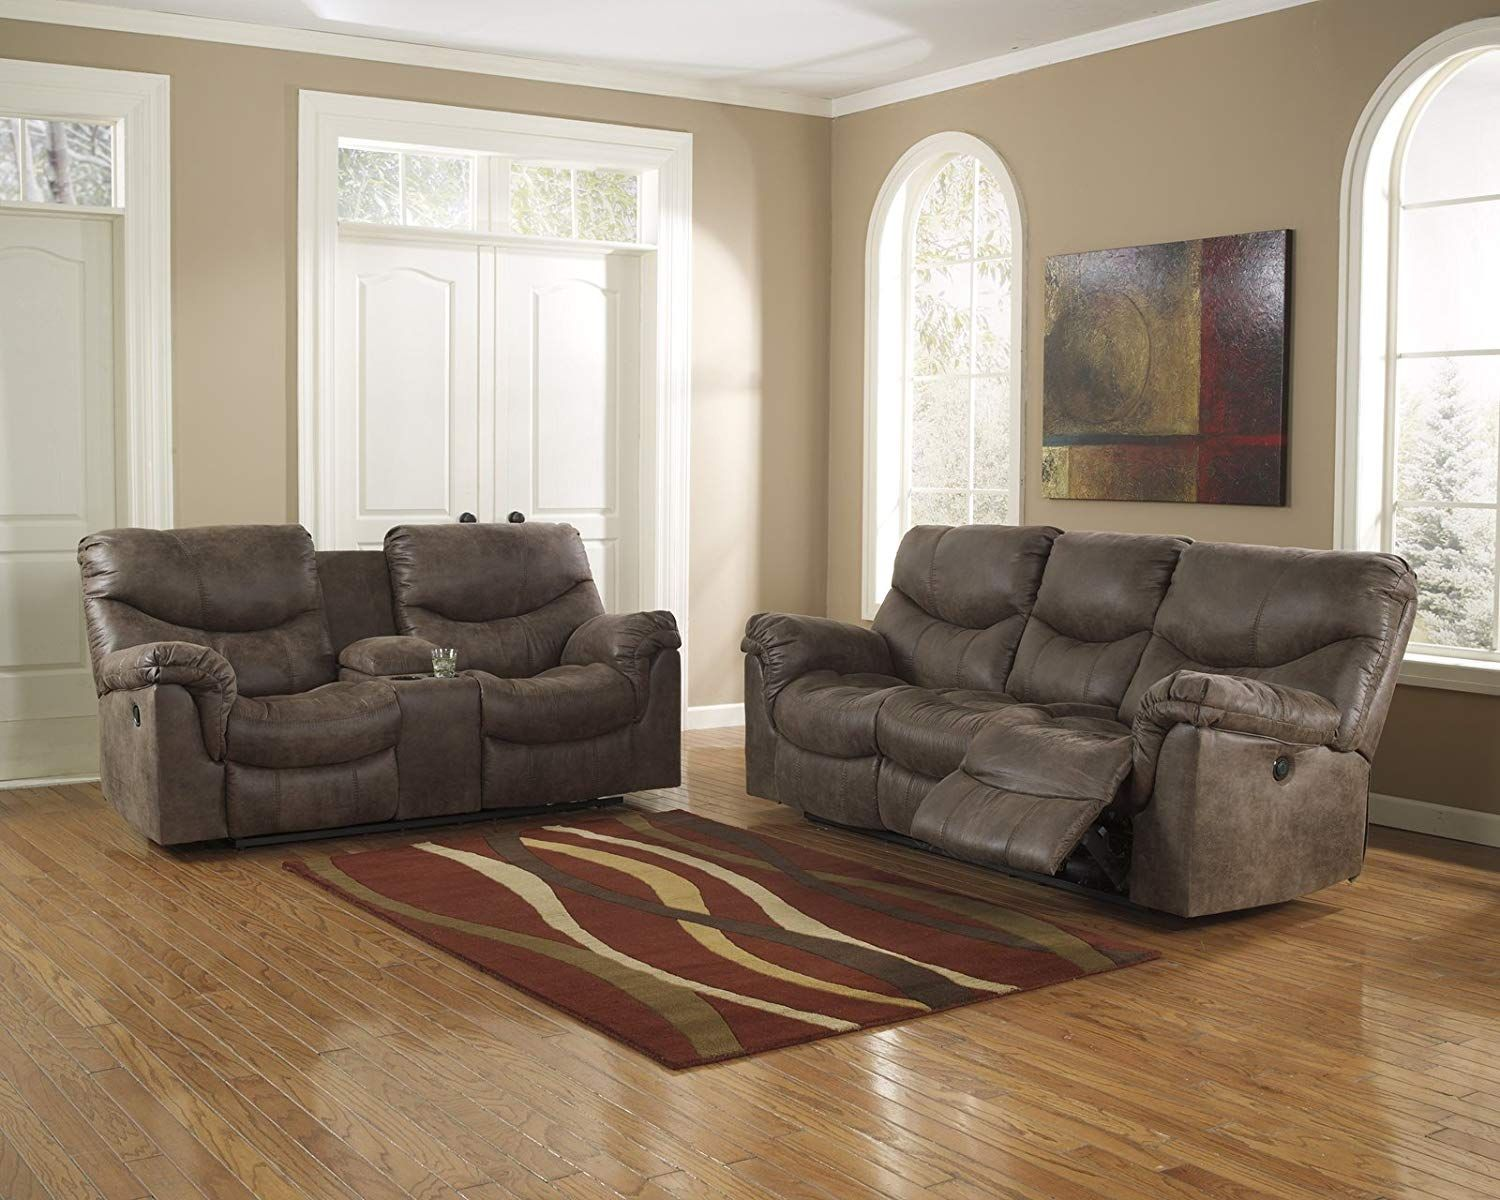 50+ Leather living room sets cheap ideas